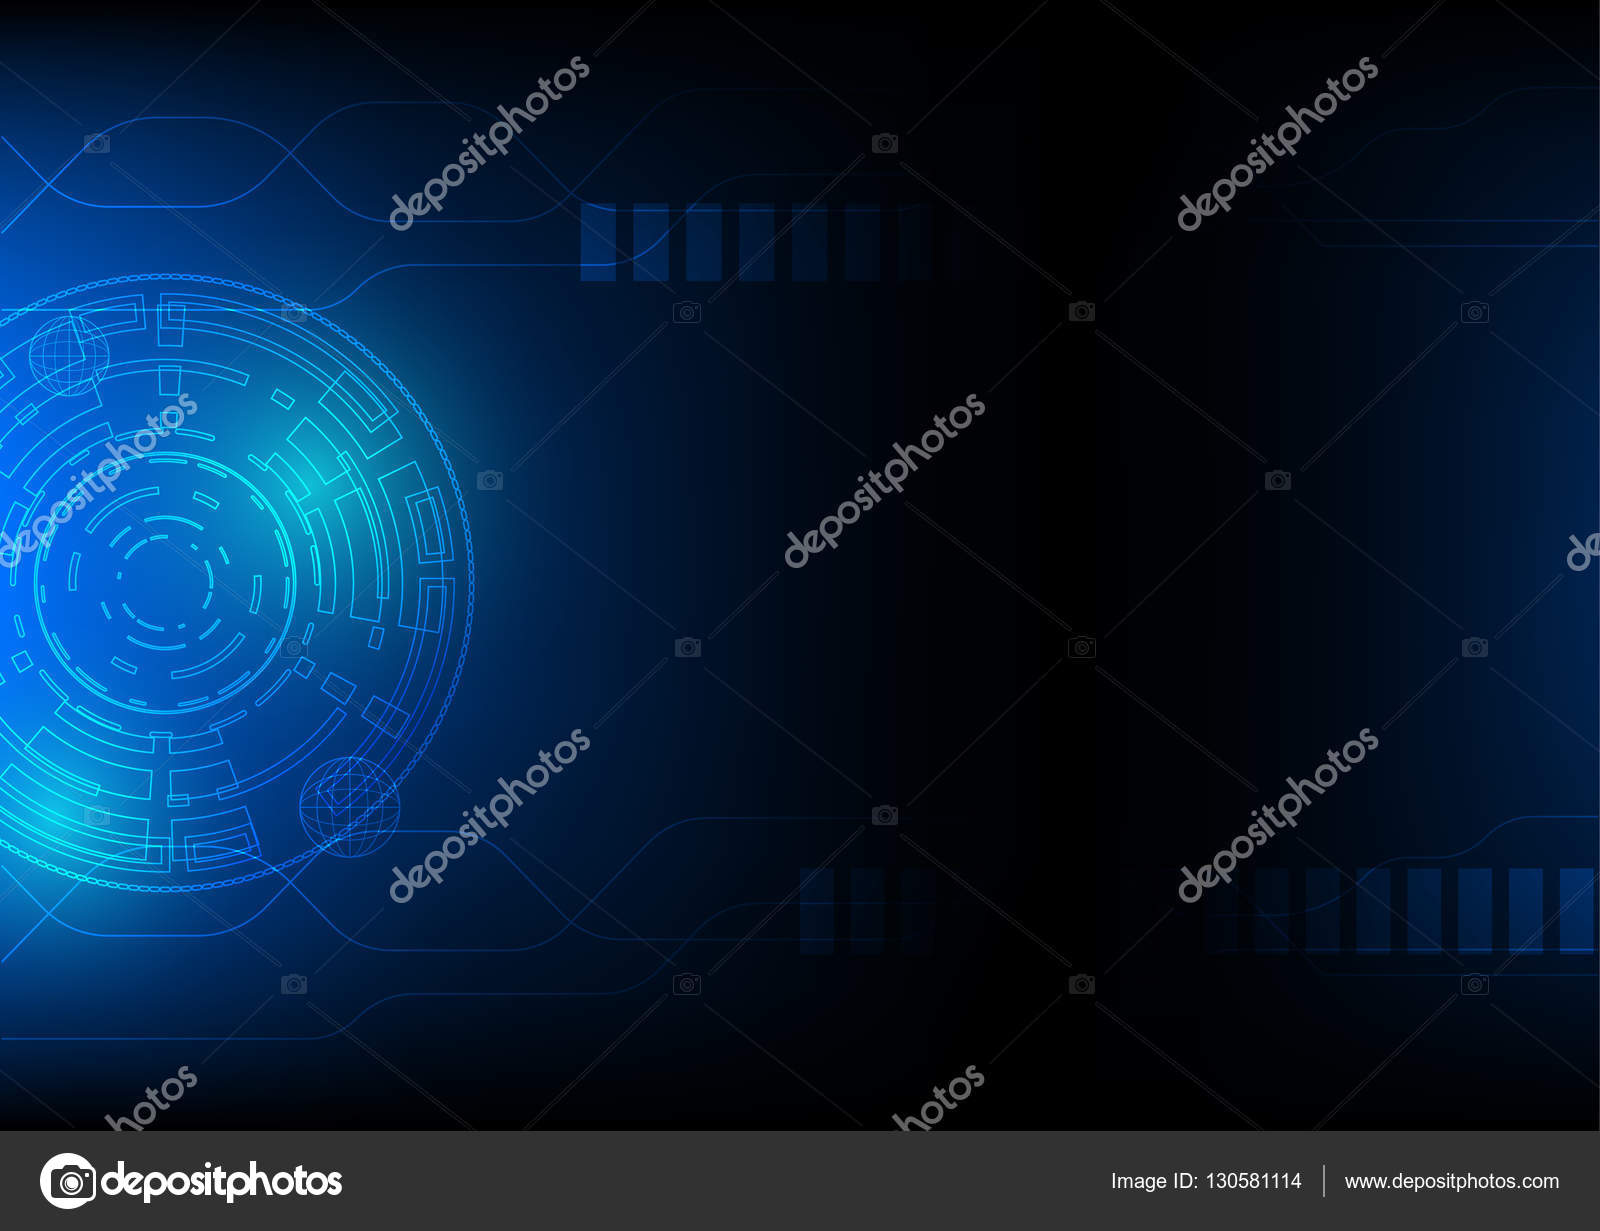 Download themes for gmail background